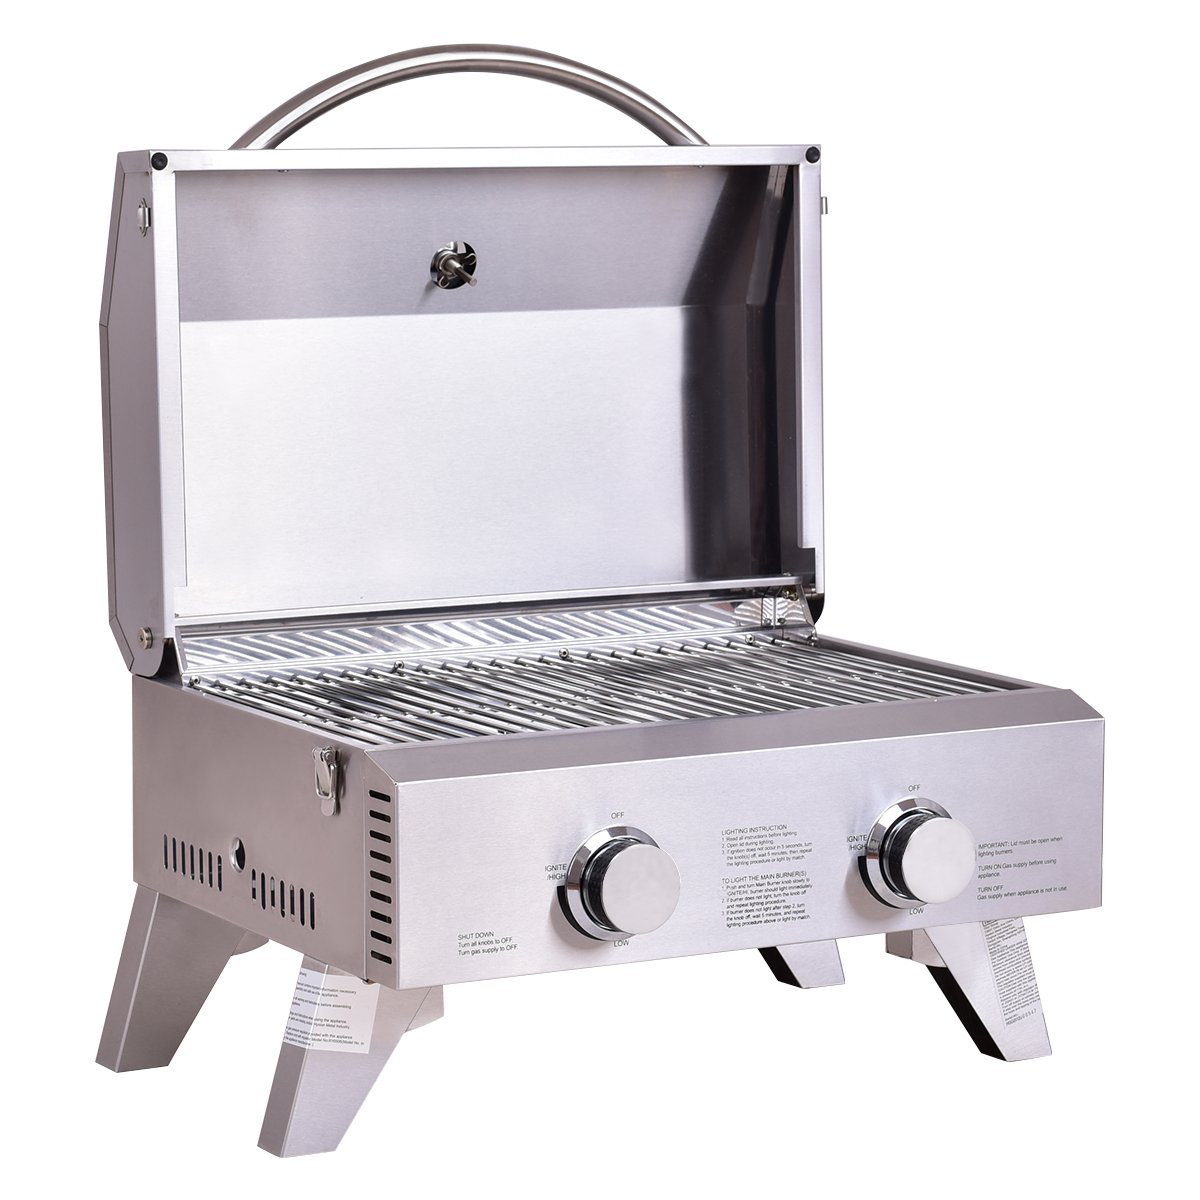 Giantex Propane Gas Grill 2 Burner Stainless Steel BBQ TableTop Perfect For Camping, Picnics or any Outdoor Use by Giantex